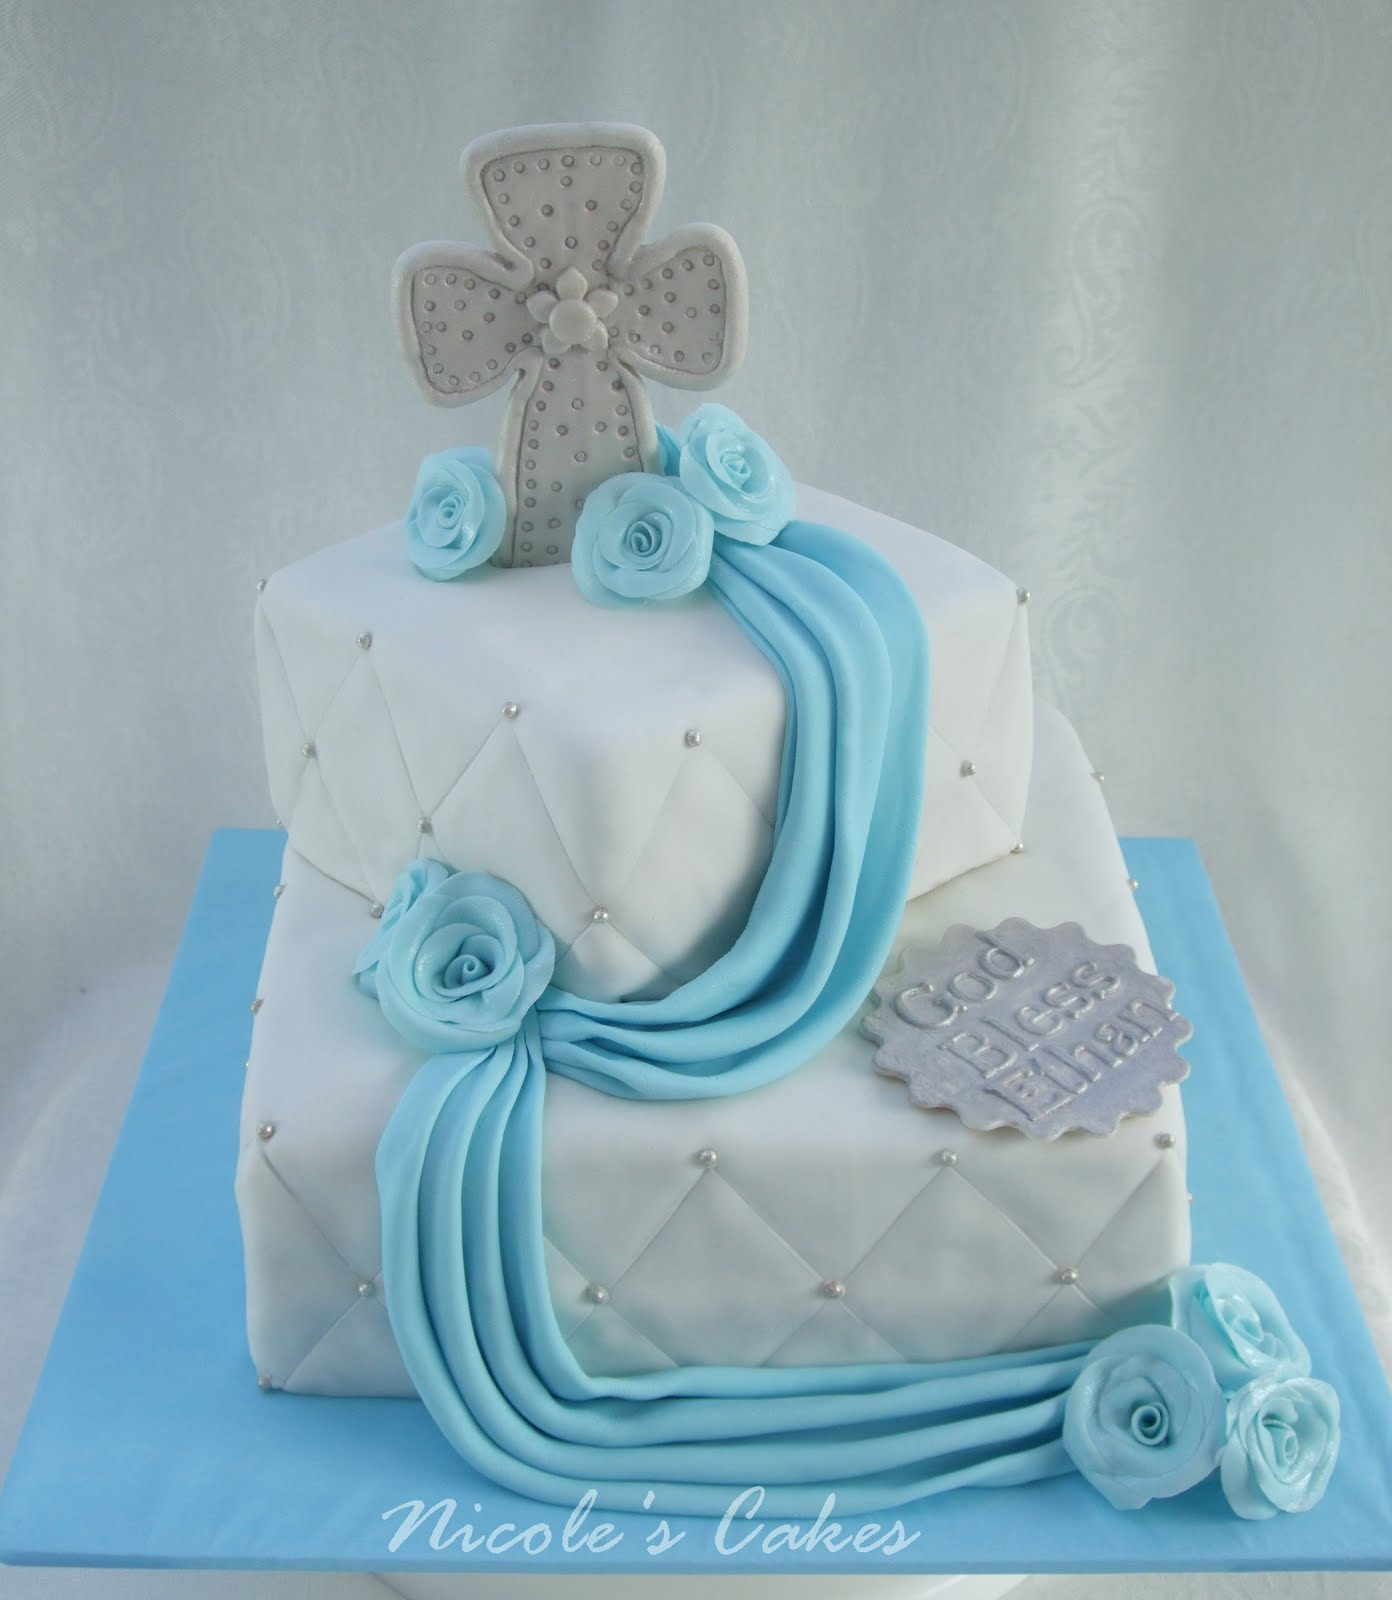 Cake Decorations For Christening Cake : Confections, Cakes & Creations!: Christening/Baptism Cake ...